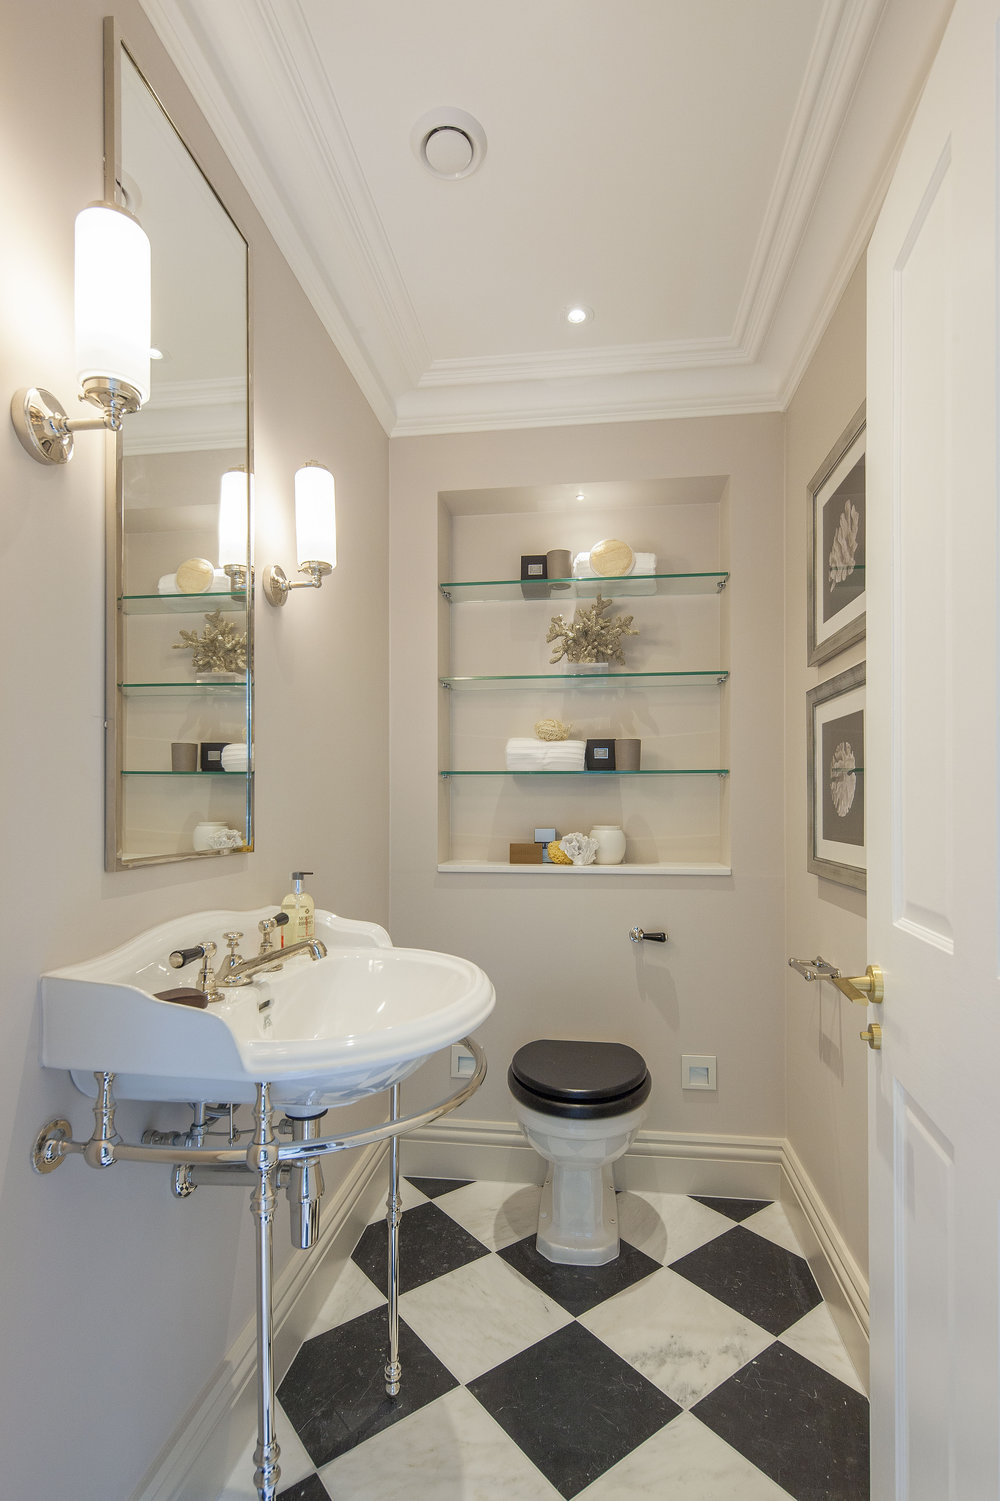 Penthouse 2-4 Inverness Terrace -Cloakroom.jpg